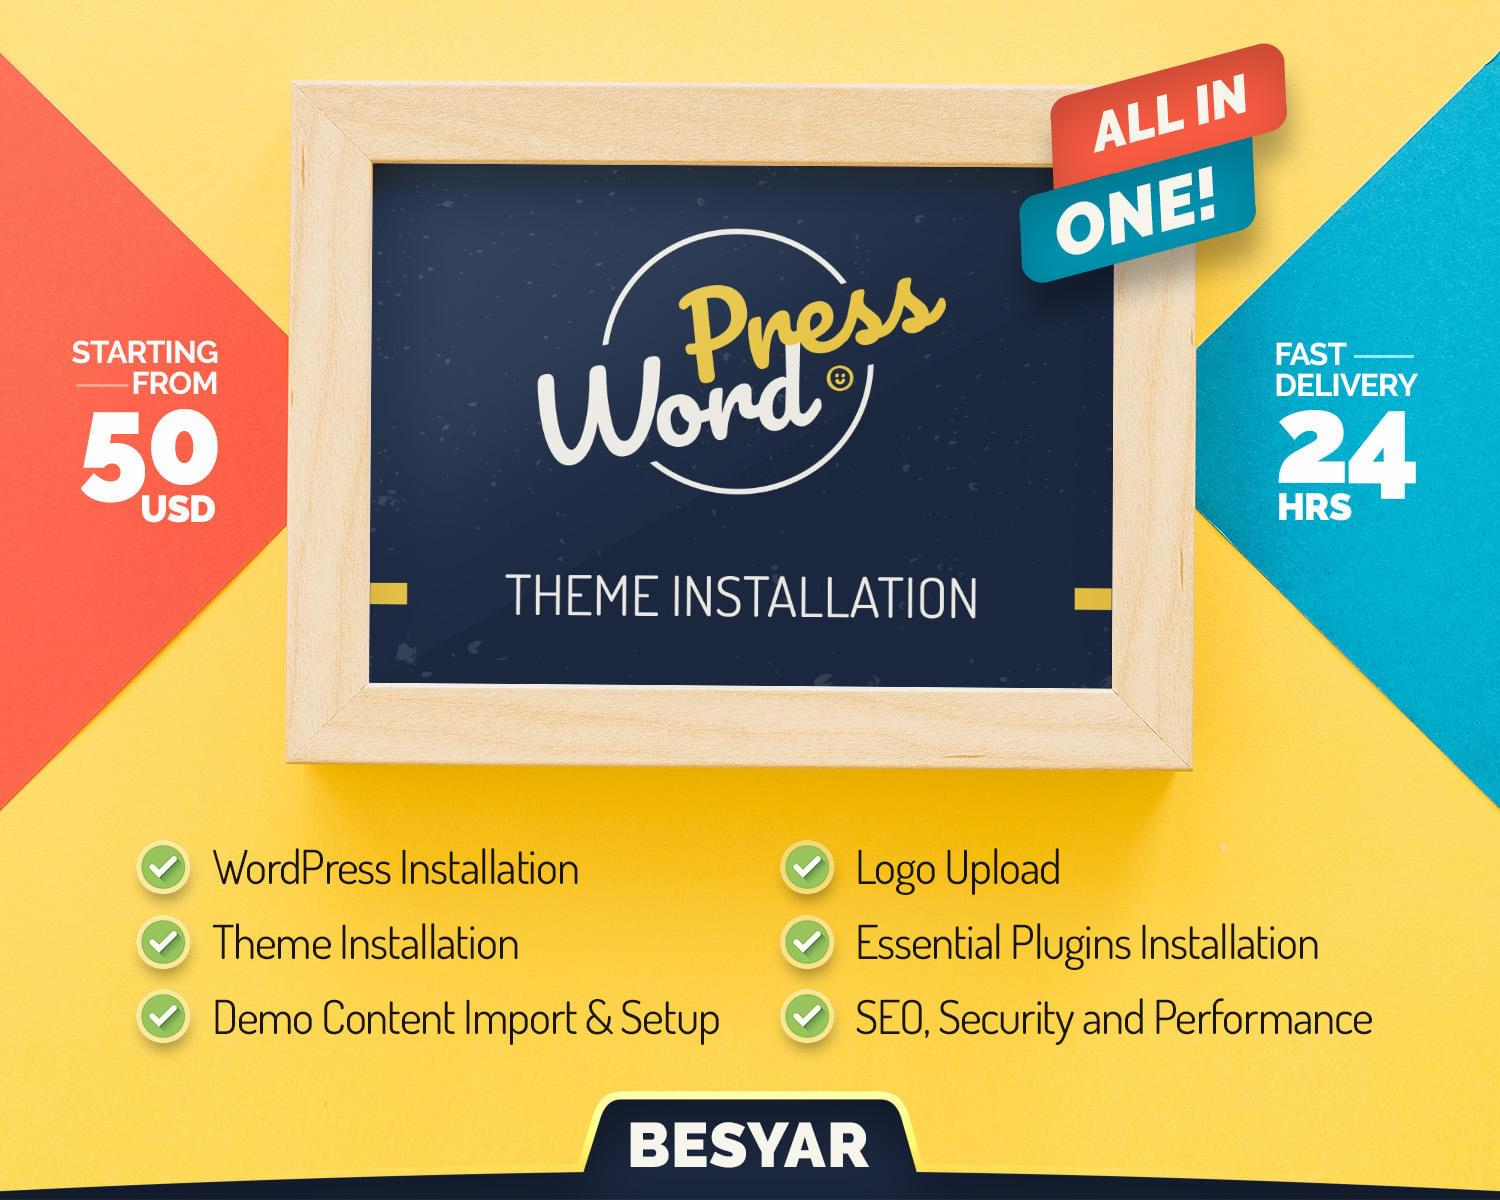 WordPress All-In-One Service - Theme Setup, SEO, Security and Performance Plugins Installation by Besyar - 111190